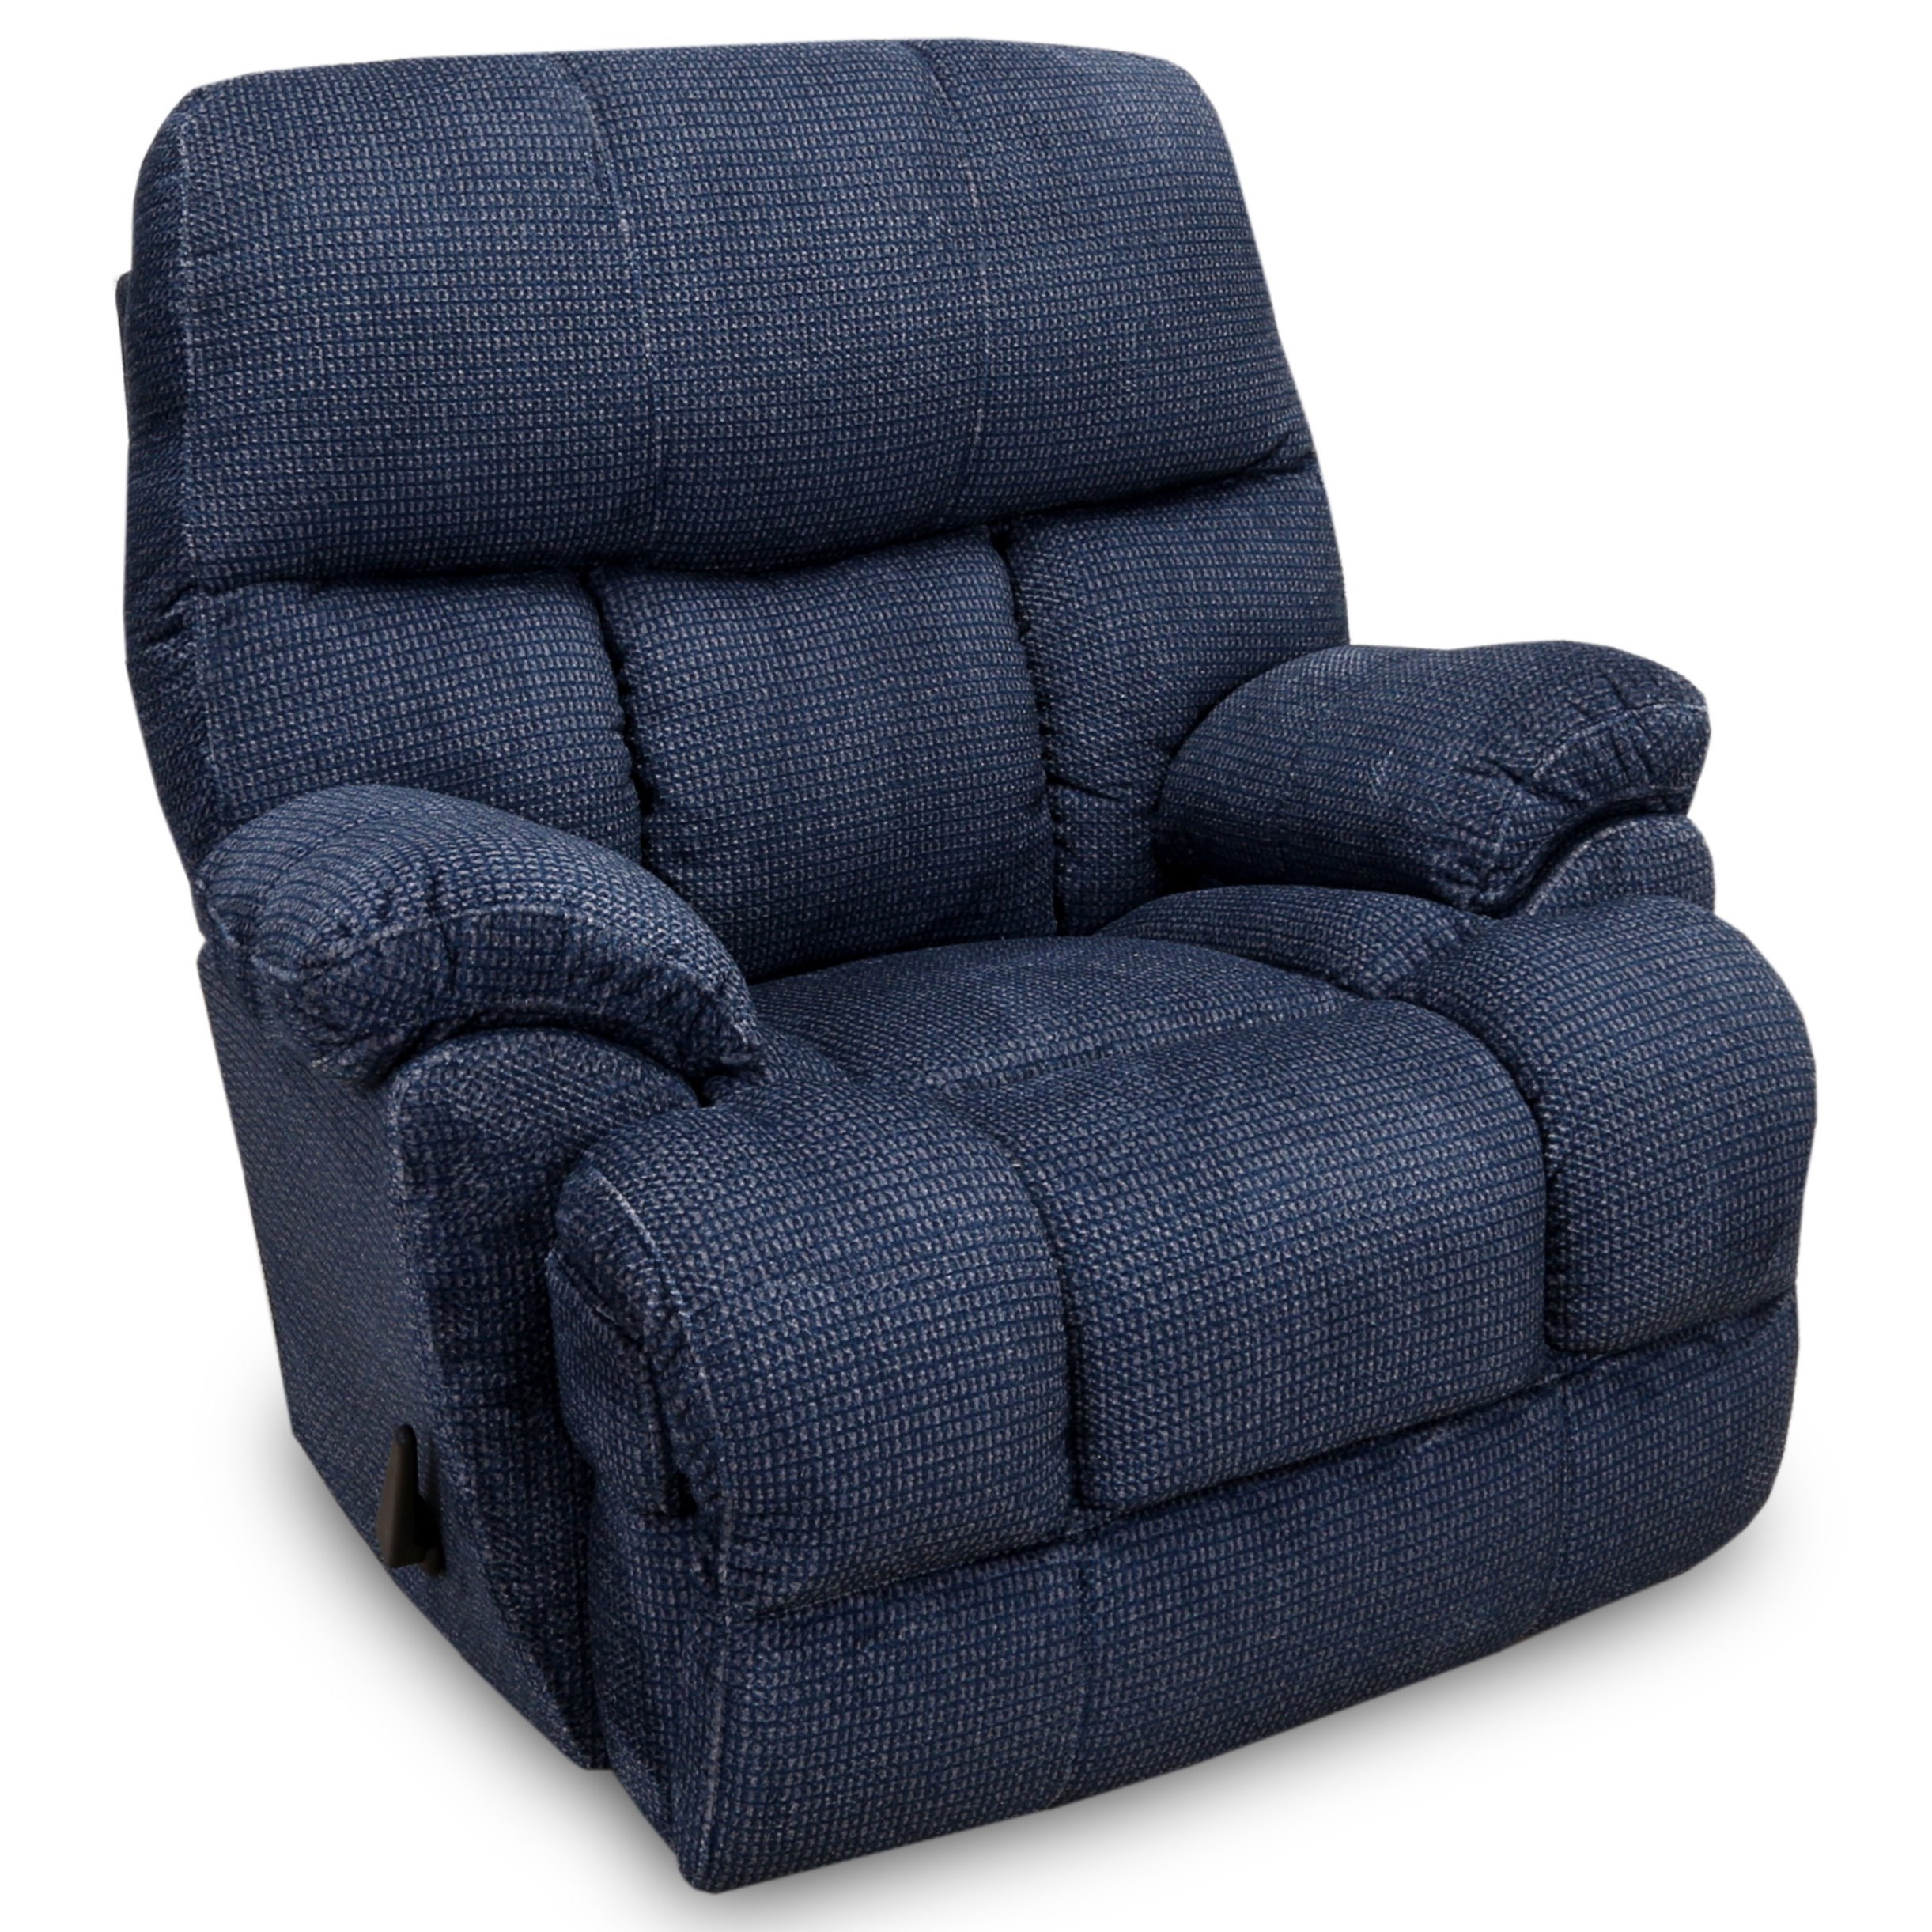 Franklin Recliners Conqueror Swivel Rocker Recliner by Franklin at Catalog Outlet